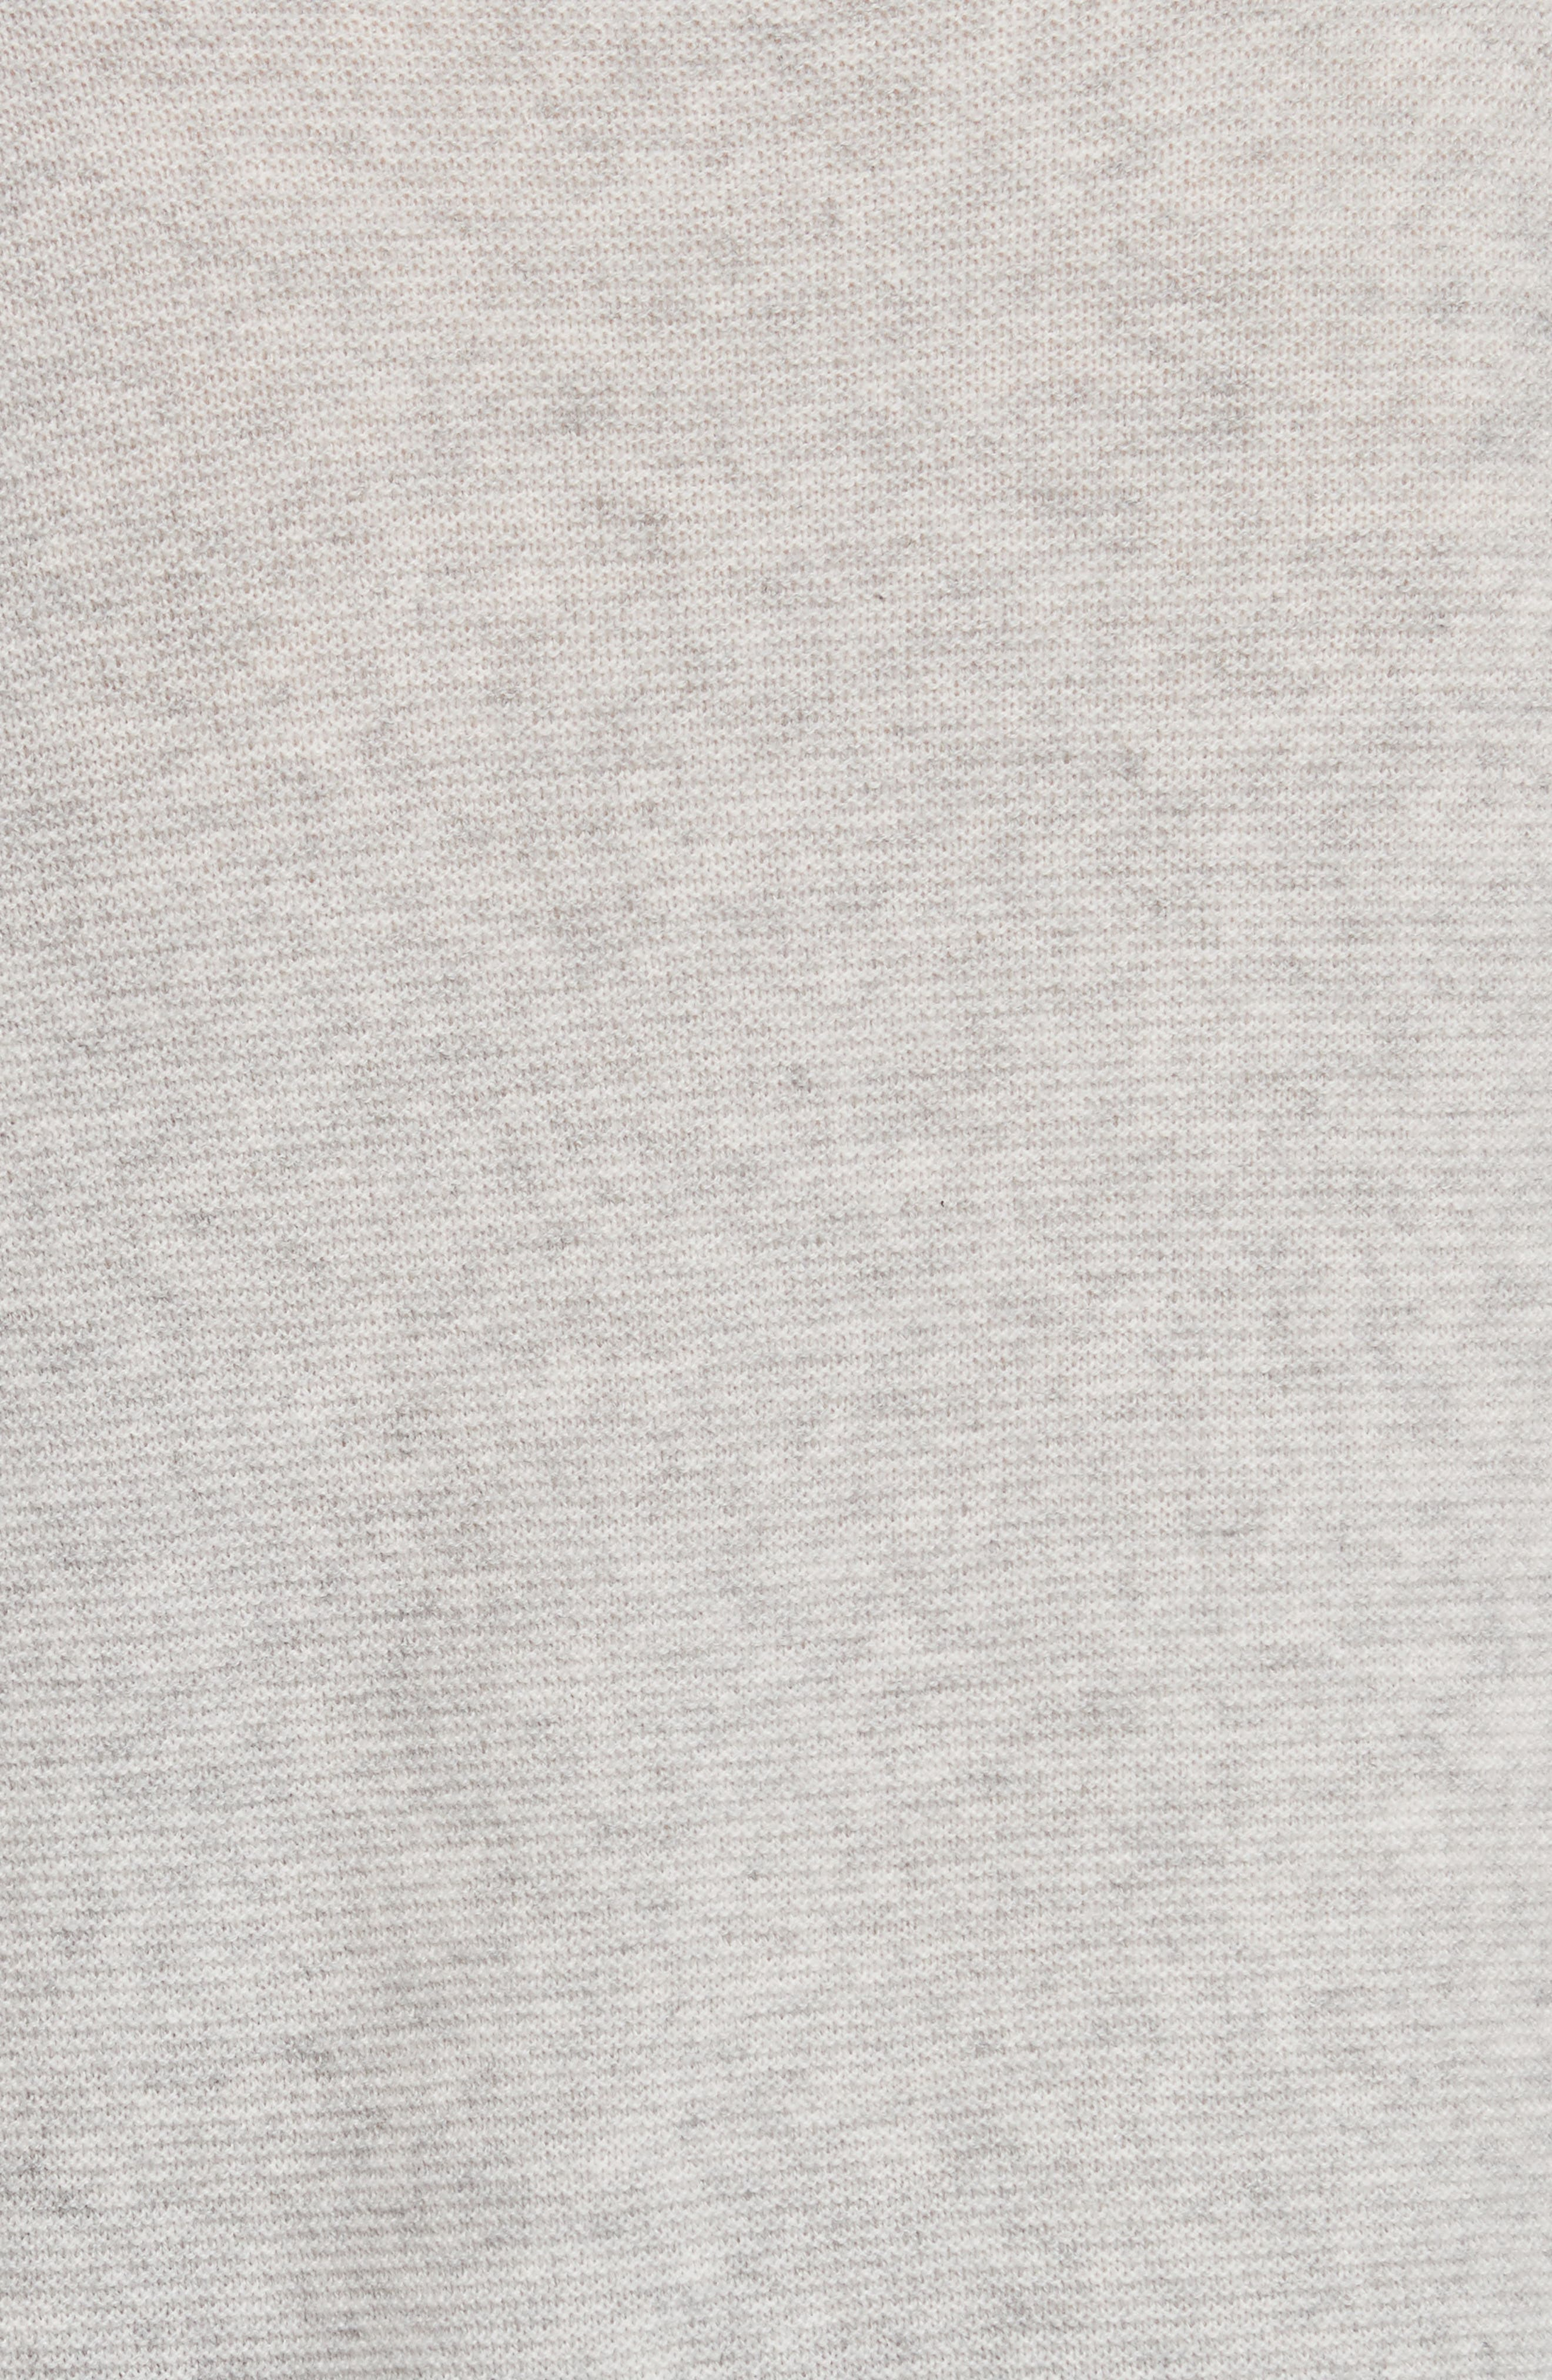 Noely Wool and Cashmere Sweater,                             Alternate thumbnail 9, color,